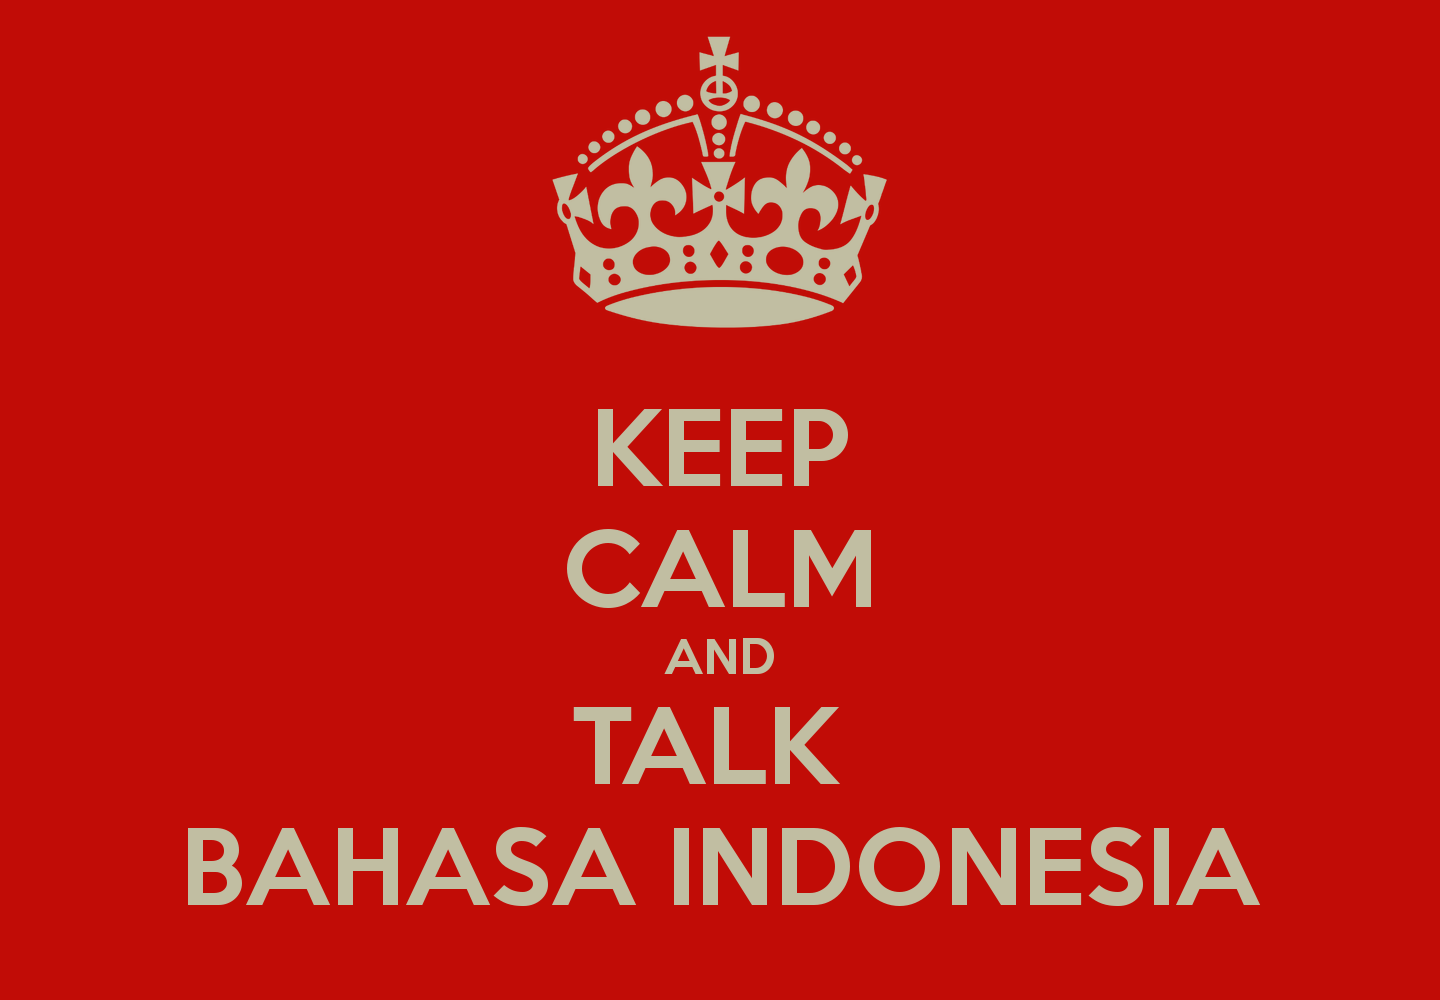 https://i2.wp.com/2.bp.blogspot.com/-PlR4XUtV1OM/UvEFxgftxlI/AAAAAAAAACw/UmhZrTHfMWc/s1600/keep-calm-and-talk-bahasa-indonesia-2.png?resize=500%2C347